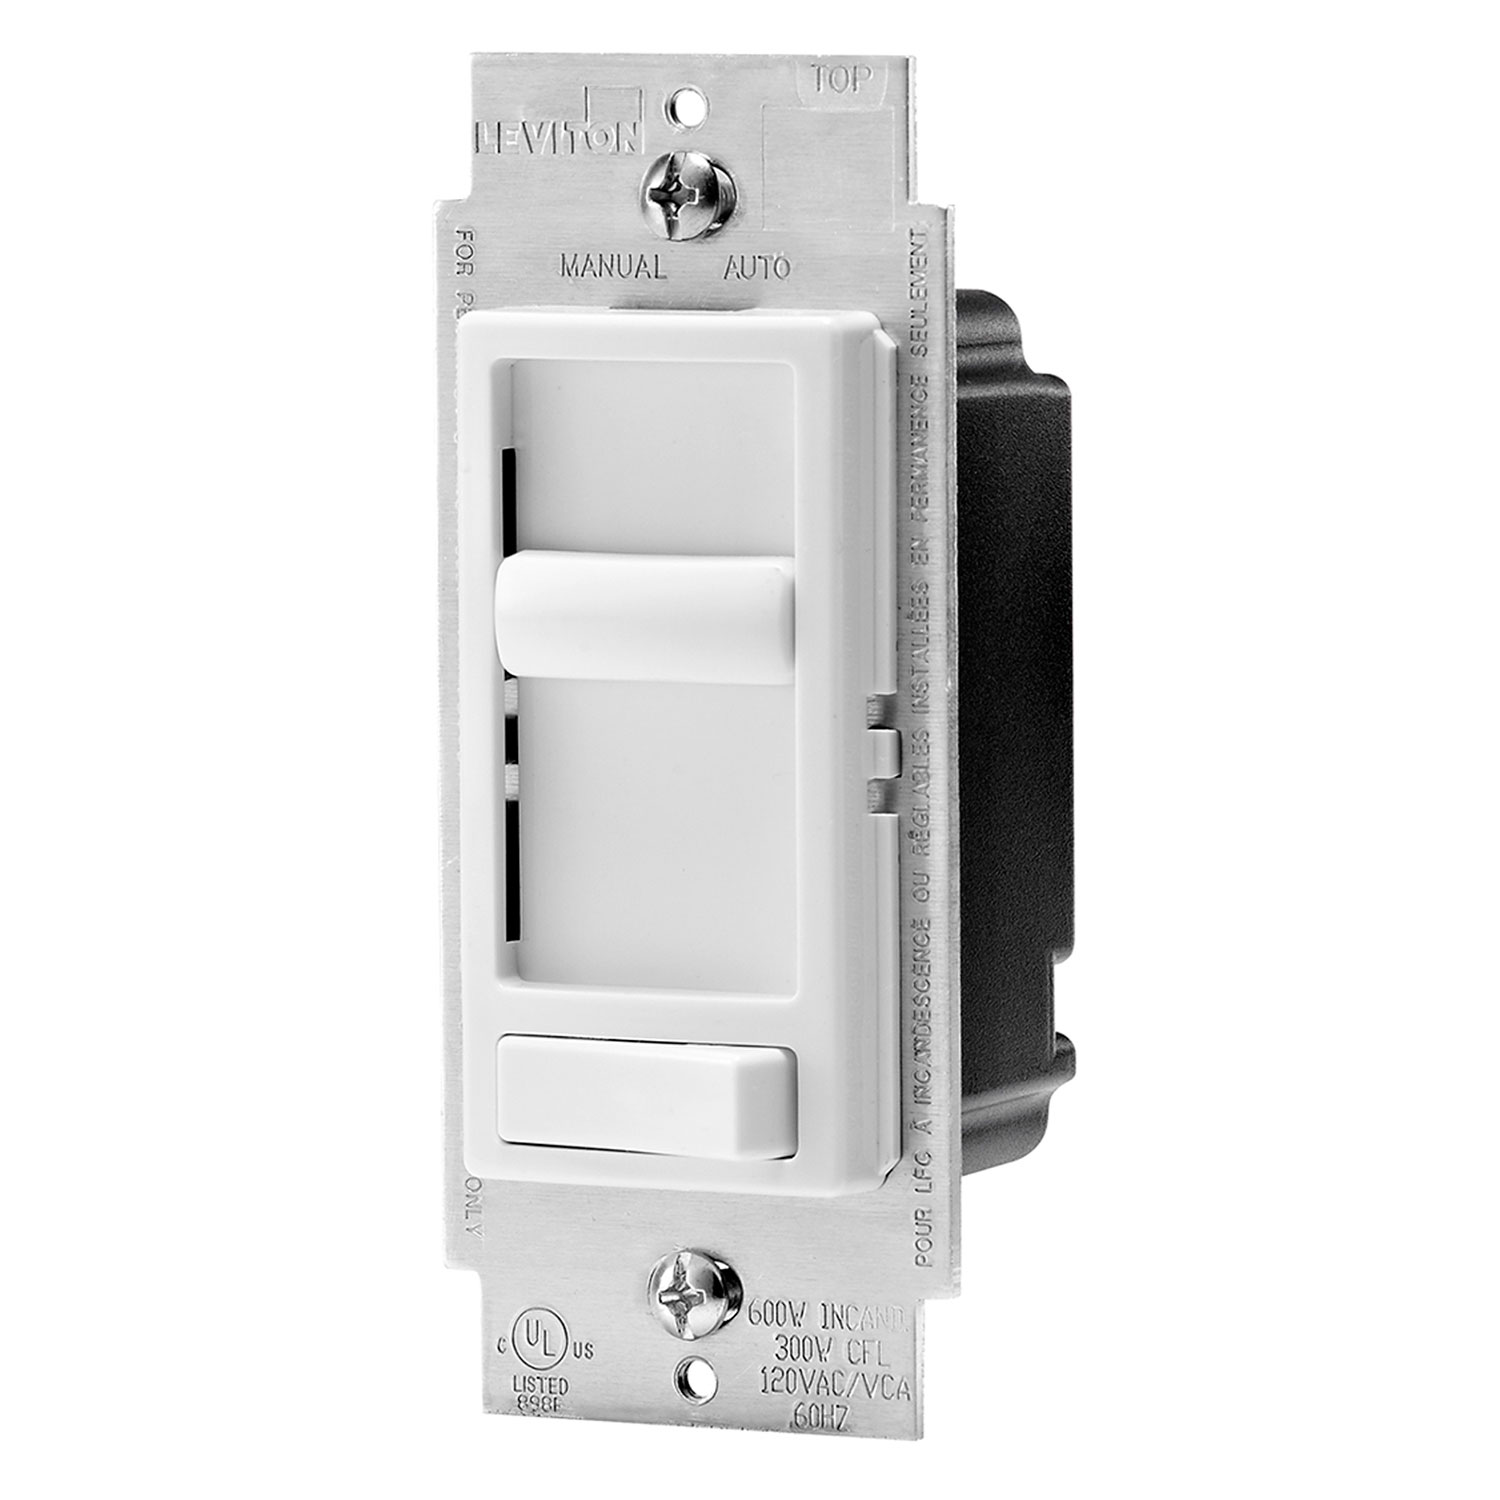 Leviton SureSlide LED Dimmer Switch : Smart Switches & Plugs - Best ...